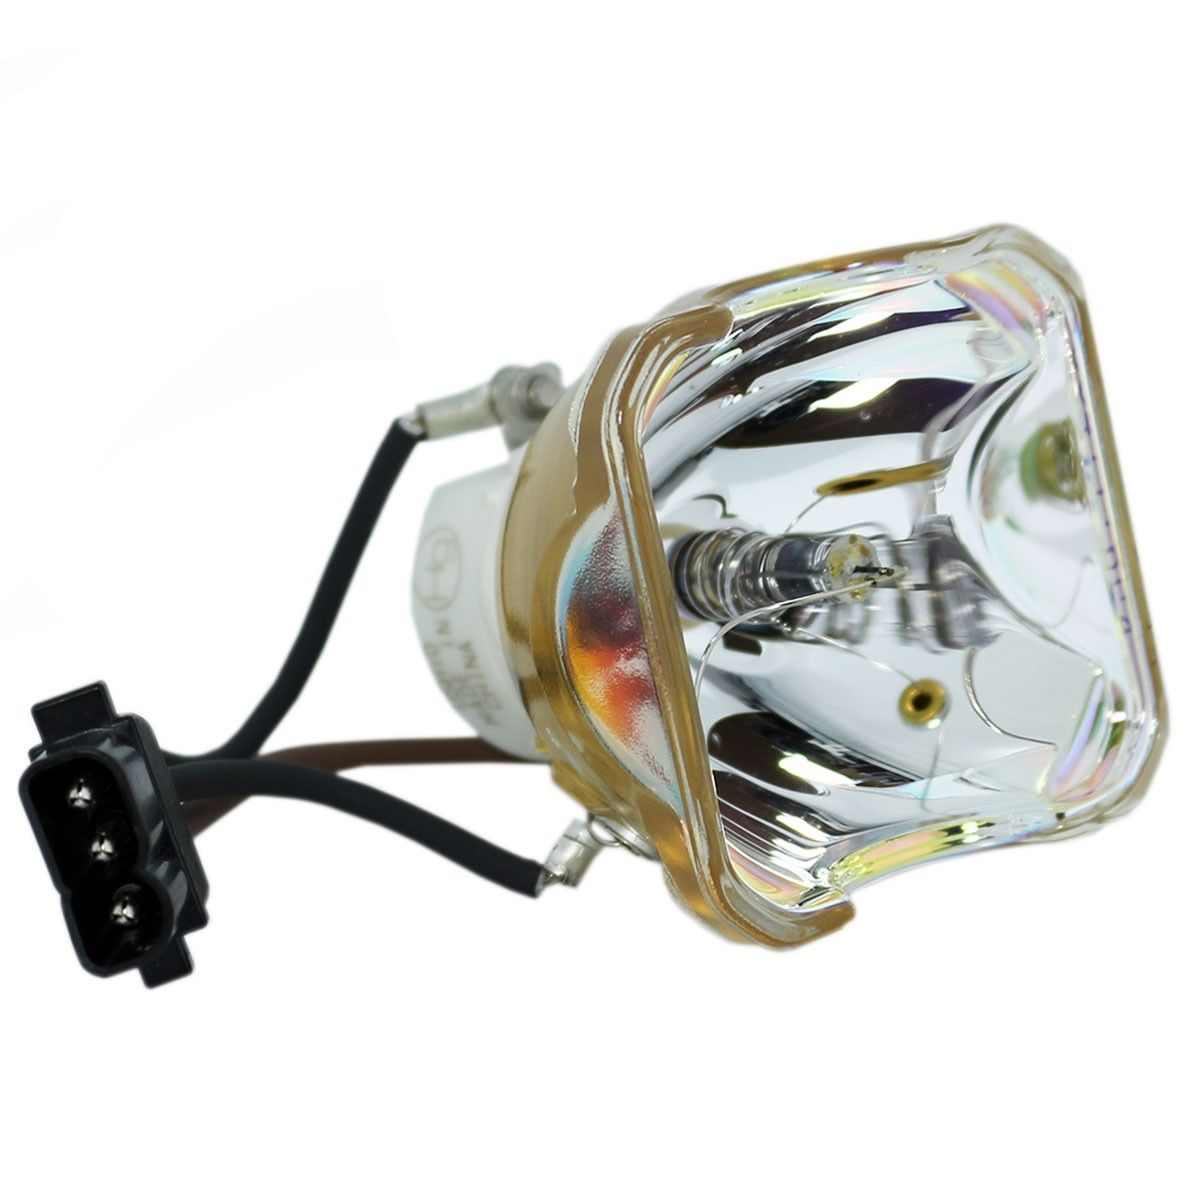 Compatible Bare Bulb 5J.J2K02.001 for BENQ W500 Projector bulb lamp without housing replacement compatible bare bulb 5j 08g01 001 lamp for benq mp730 projector